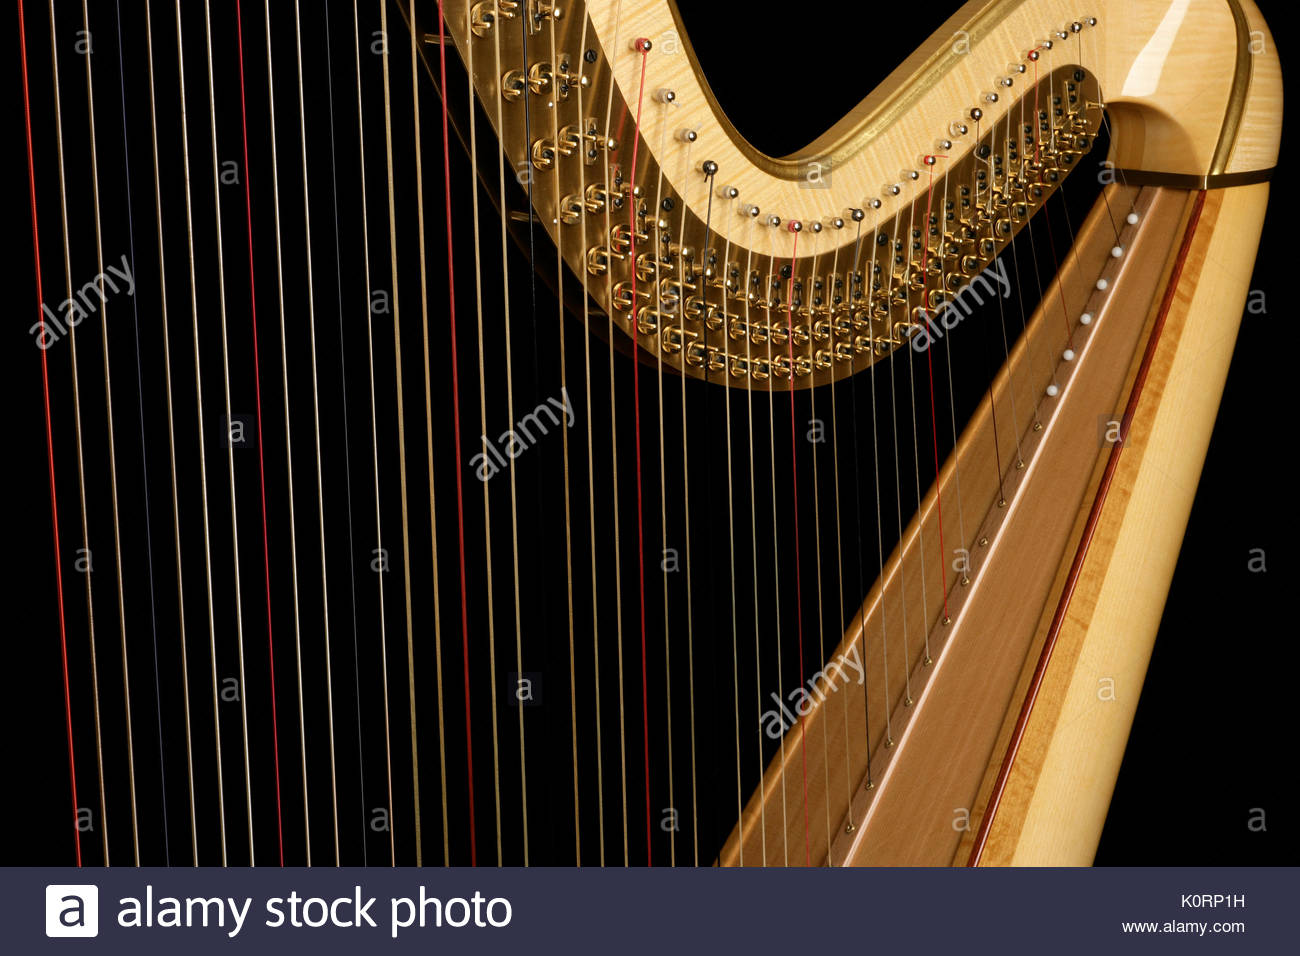 concert-harp-close-up-of-detail-showing-the-strings-and-tuning-pegs-K0RP1H